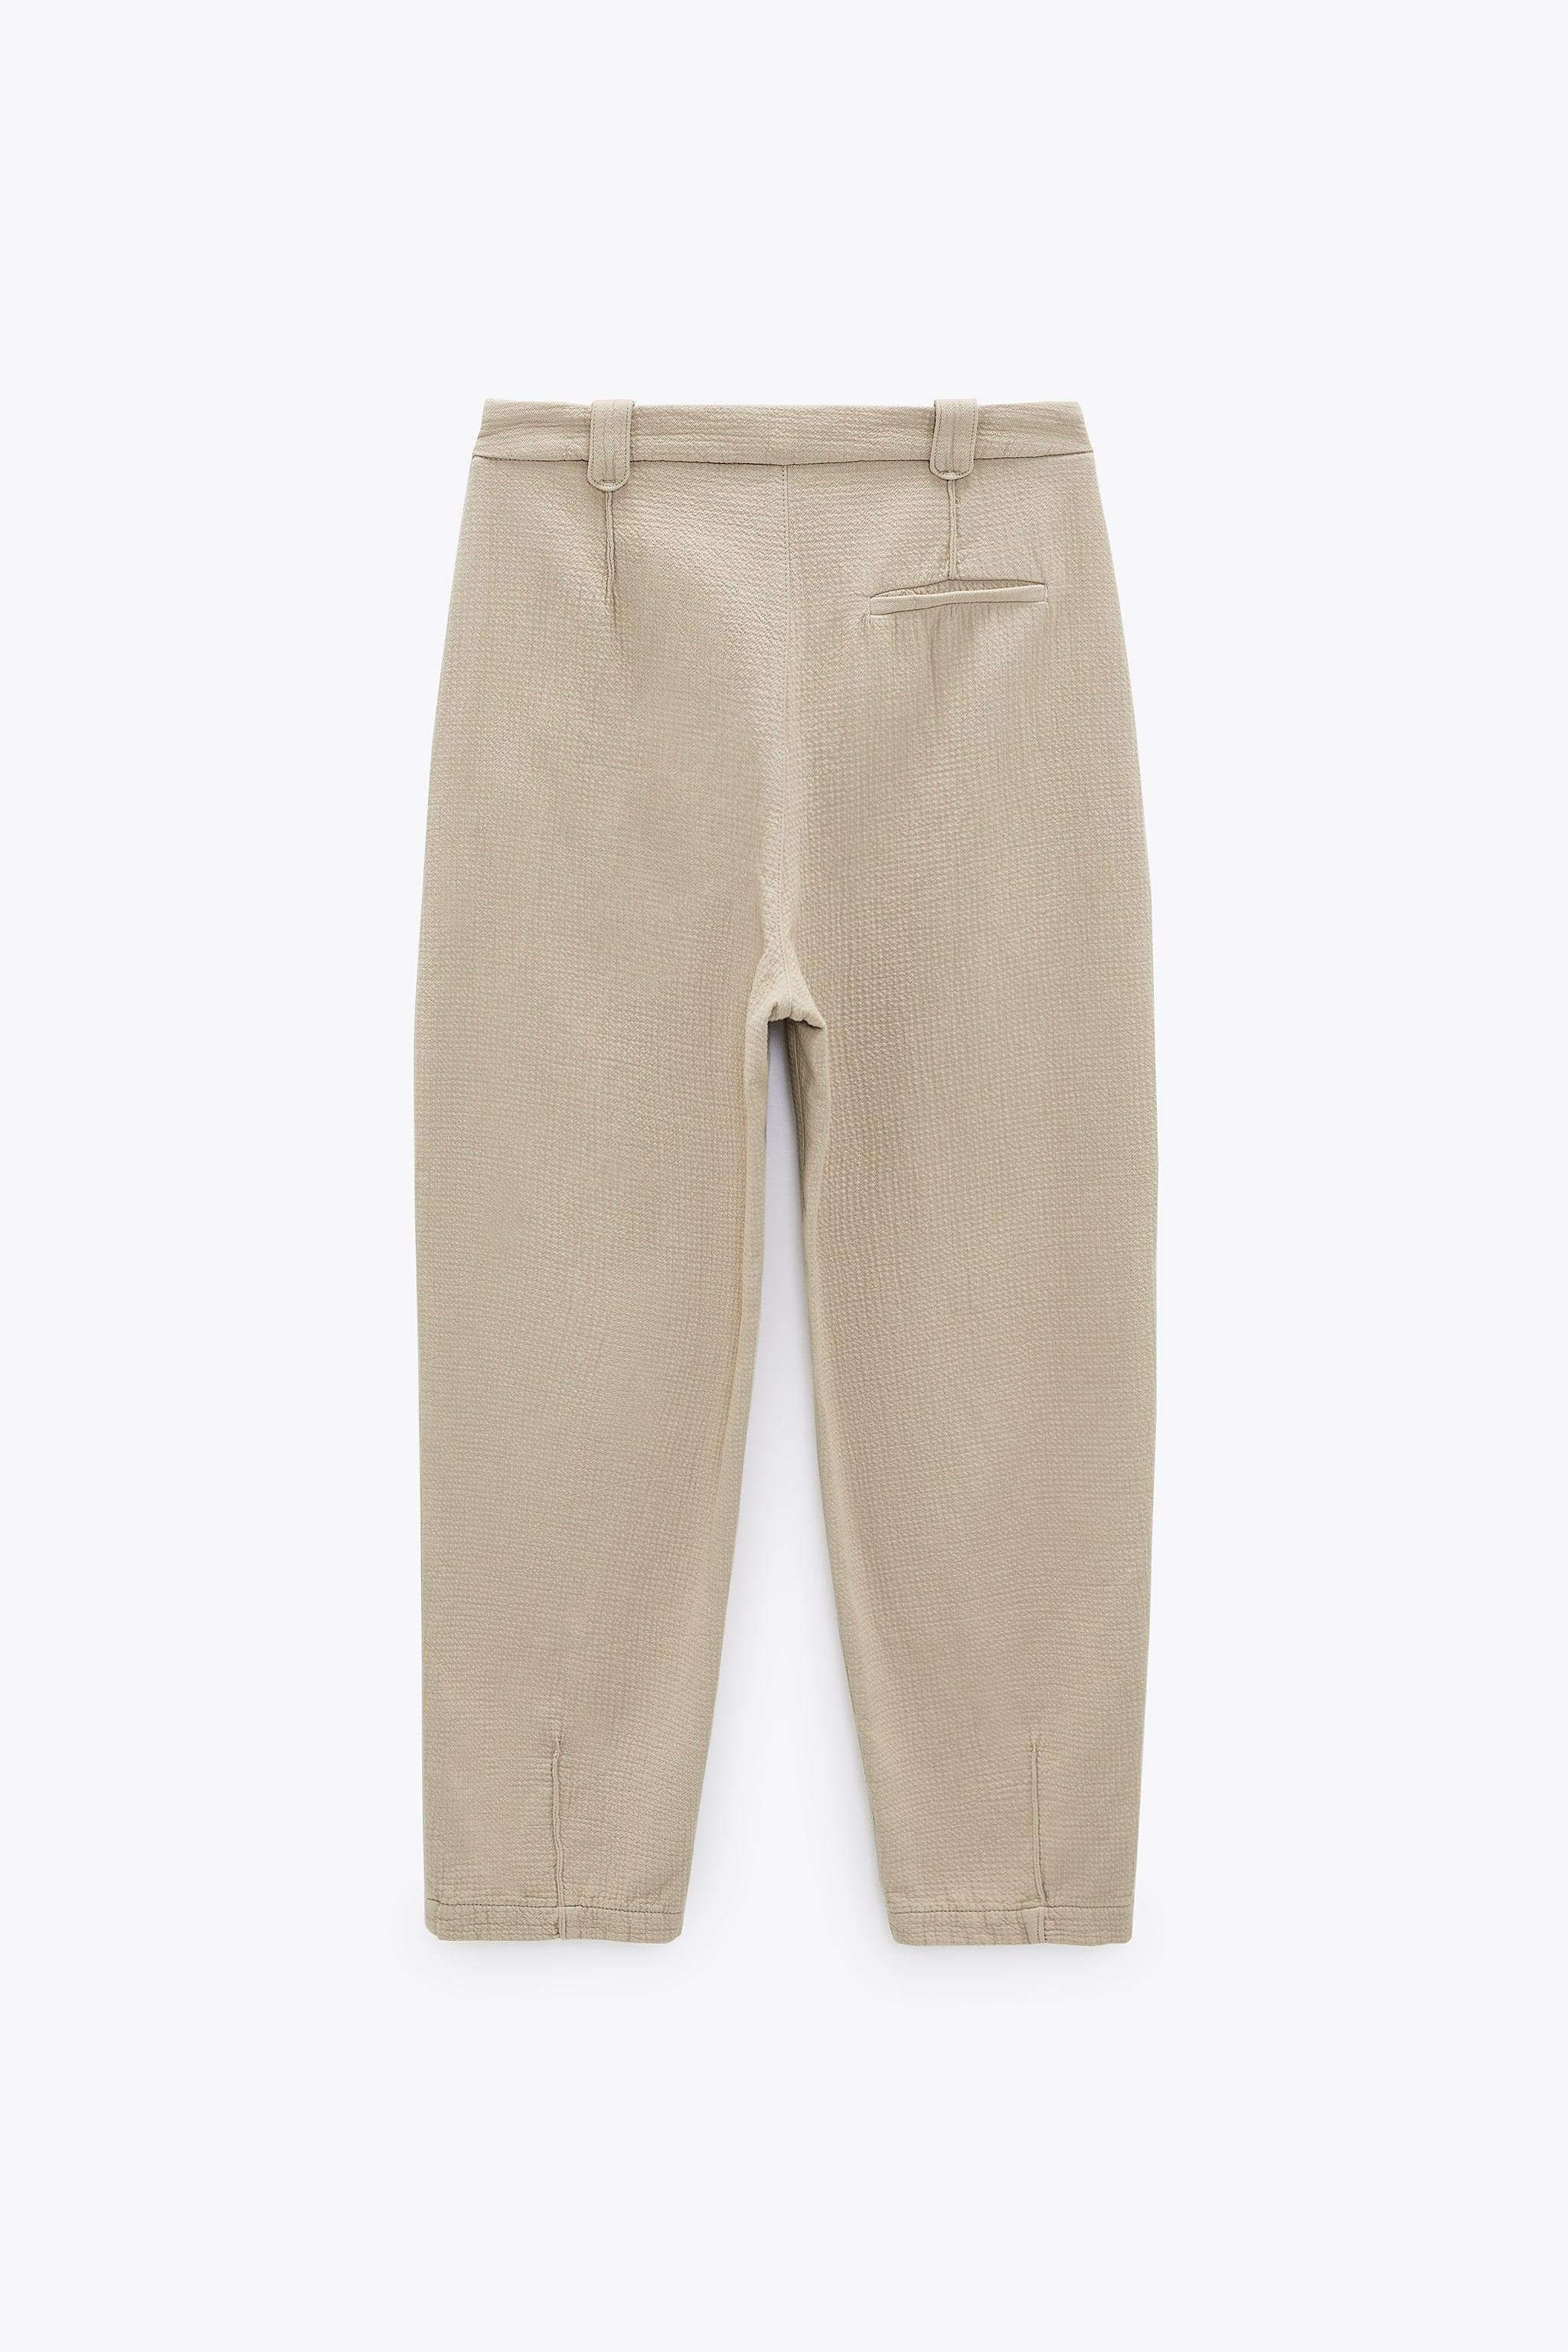 SLOUCHY SOFT PANTS 6